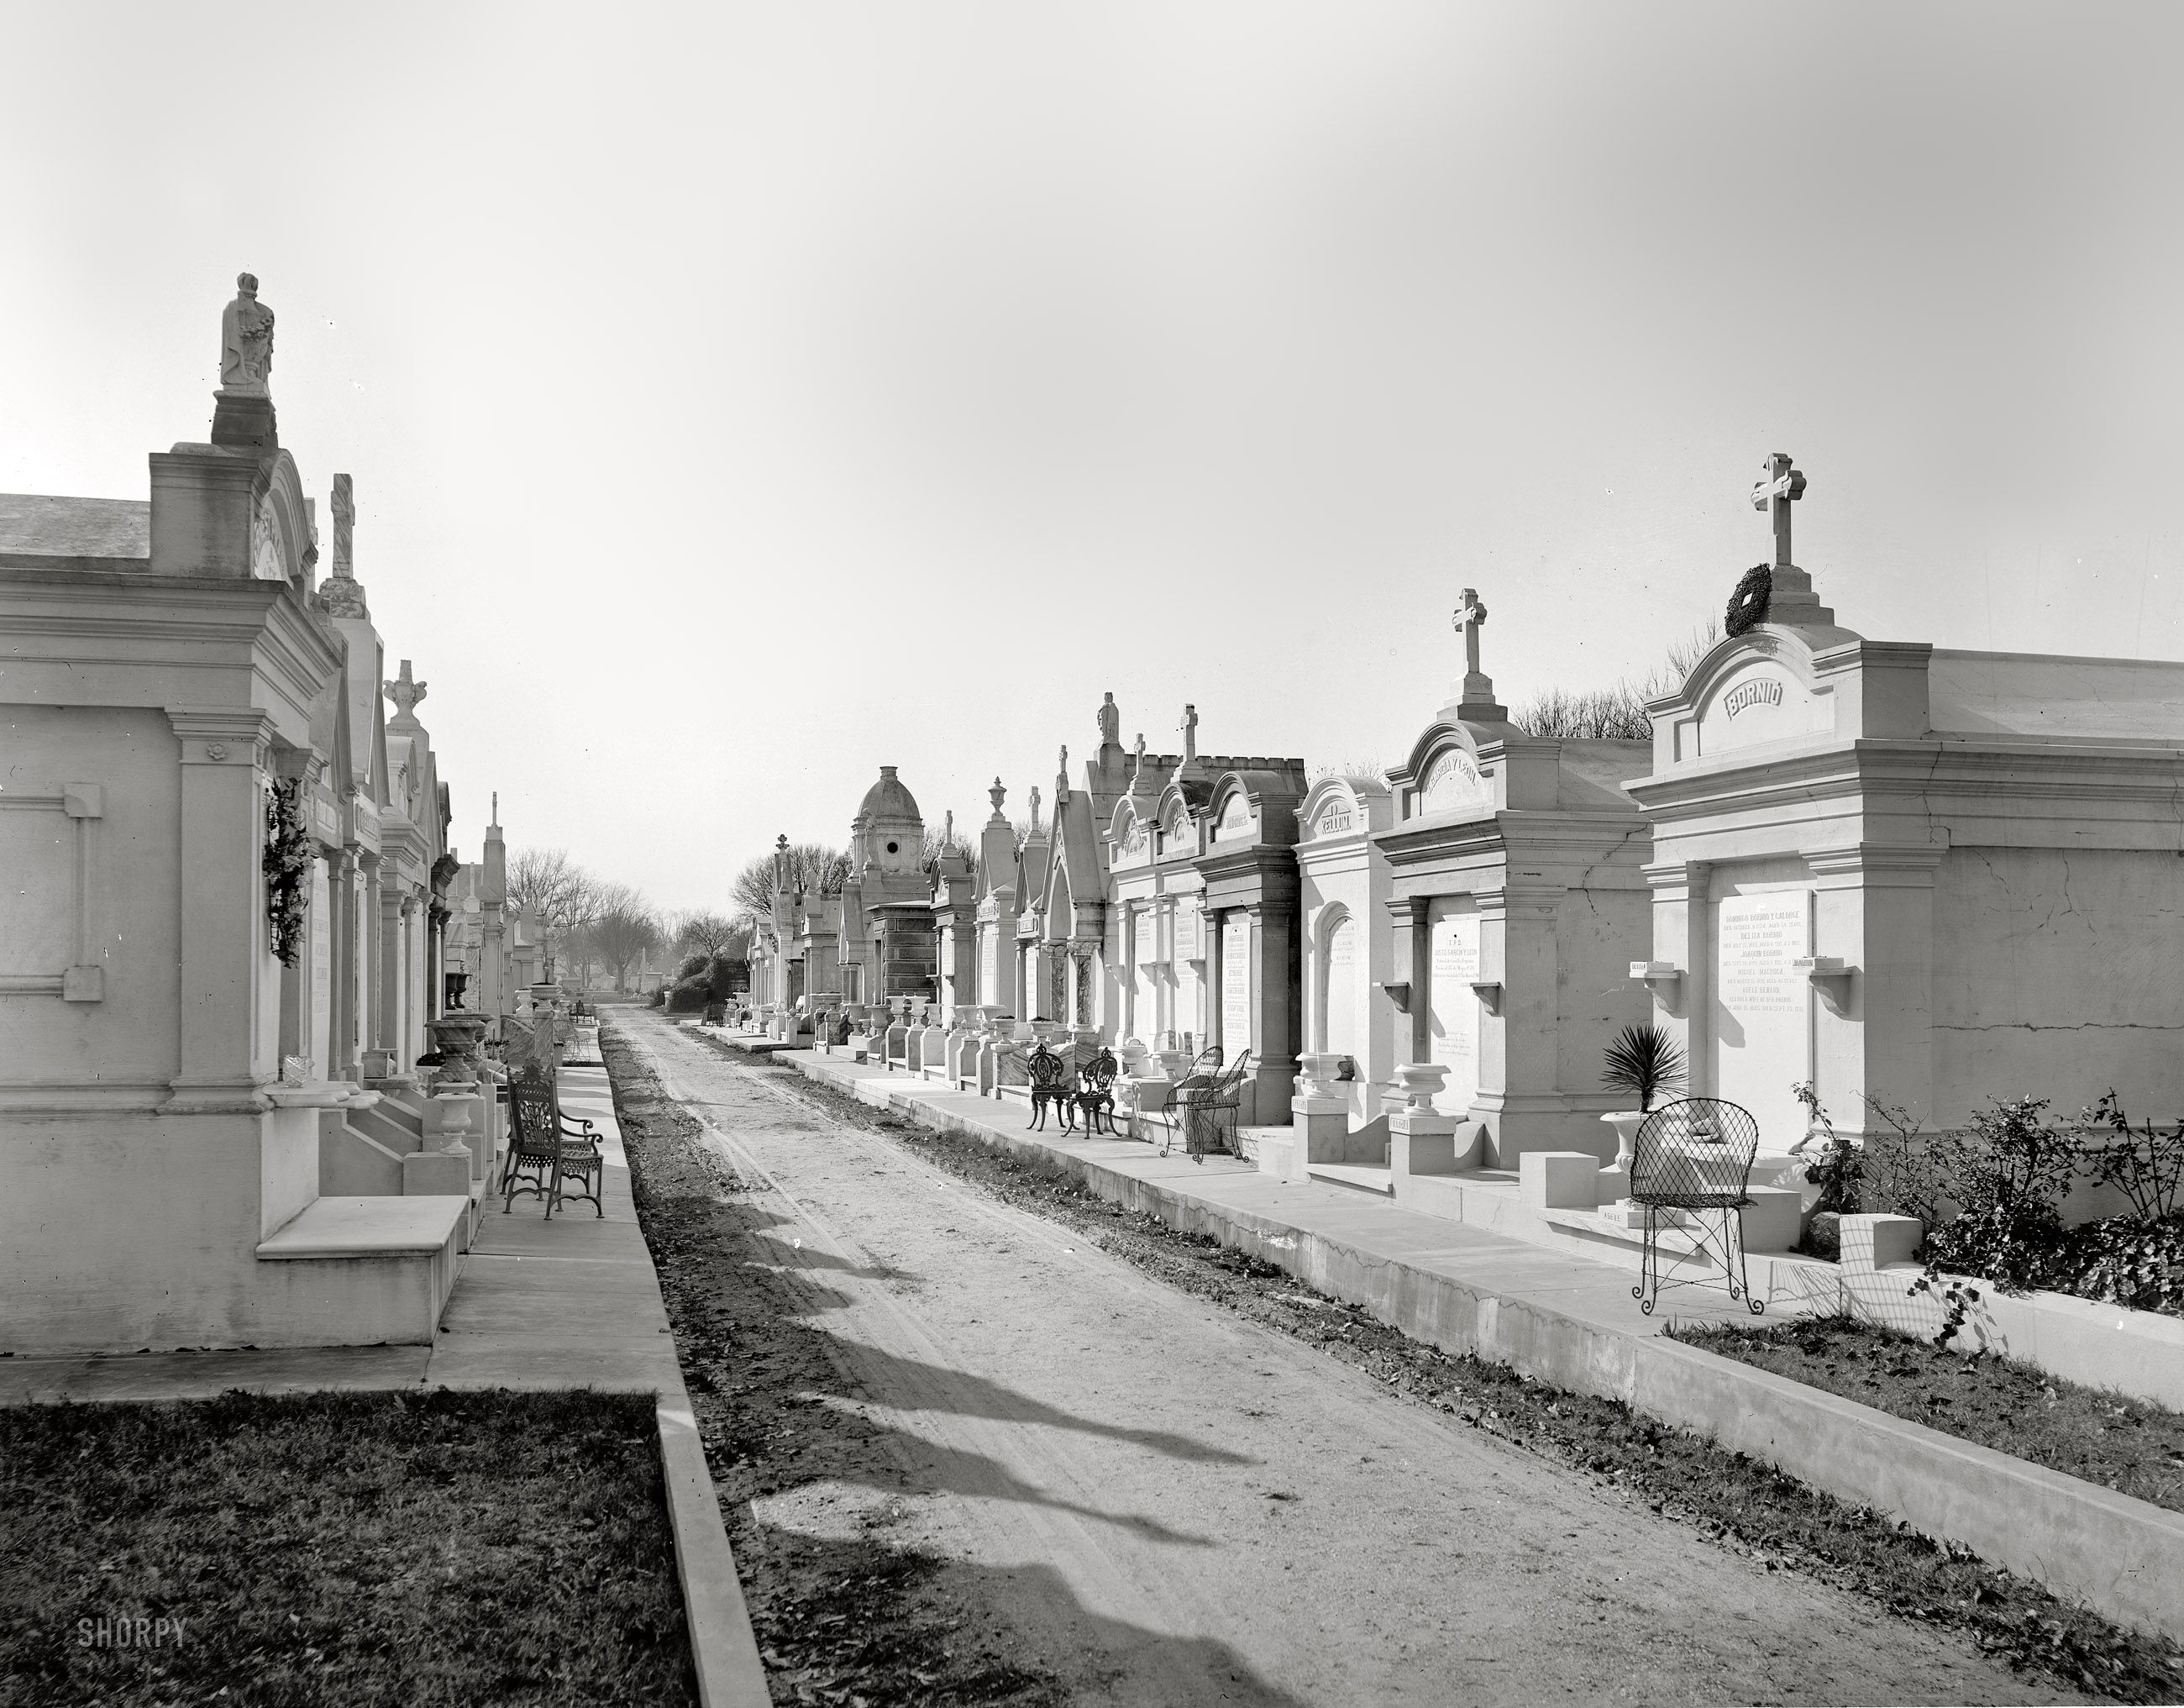 Circa 1895 metairie cemetery new orleans 8x10 inch for Metairie architects